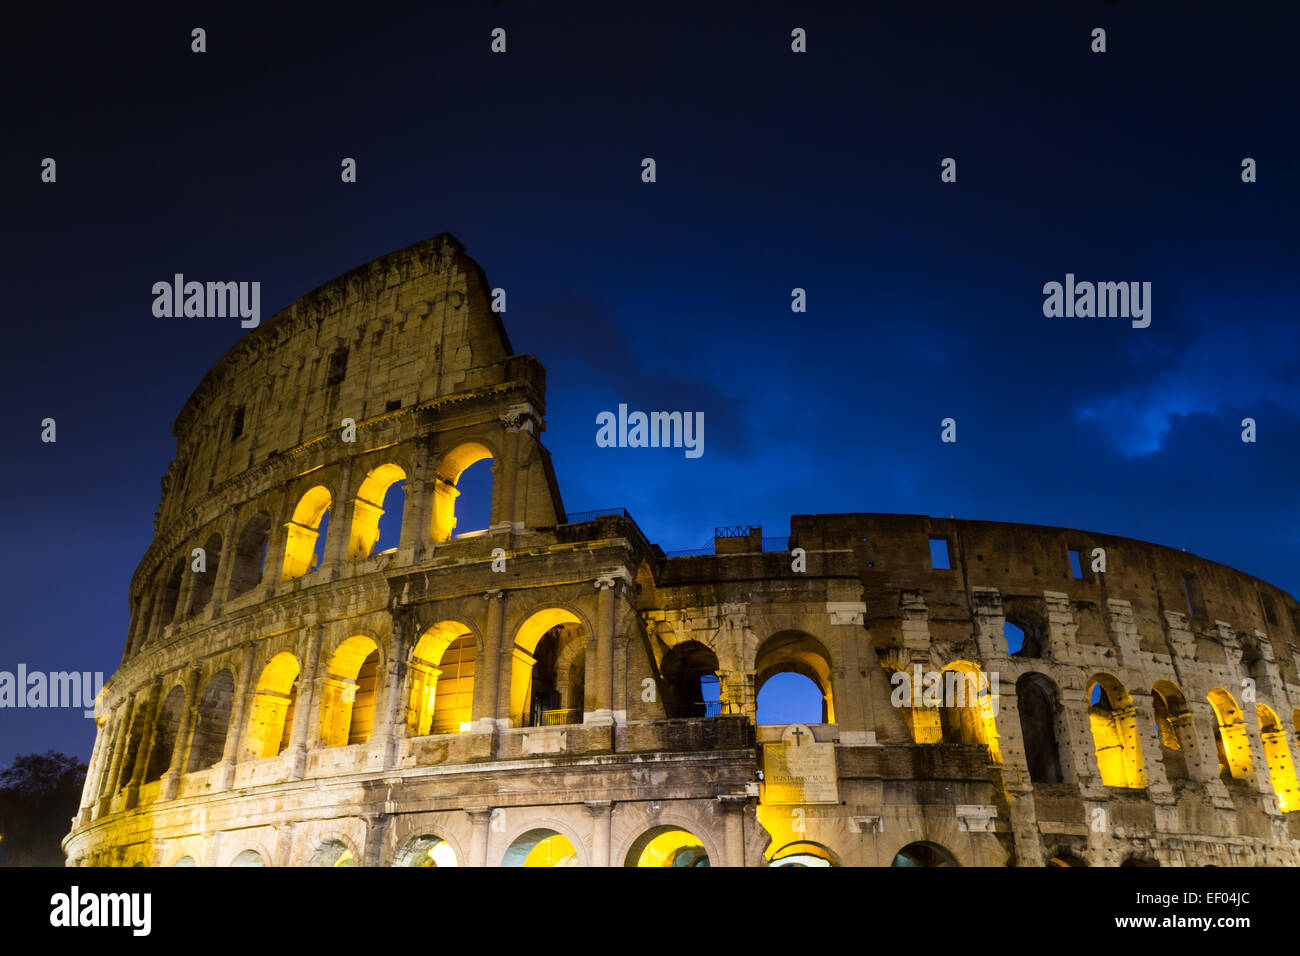 Thunderclouds over the coliseum, Rome, Italy - Stock Image